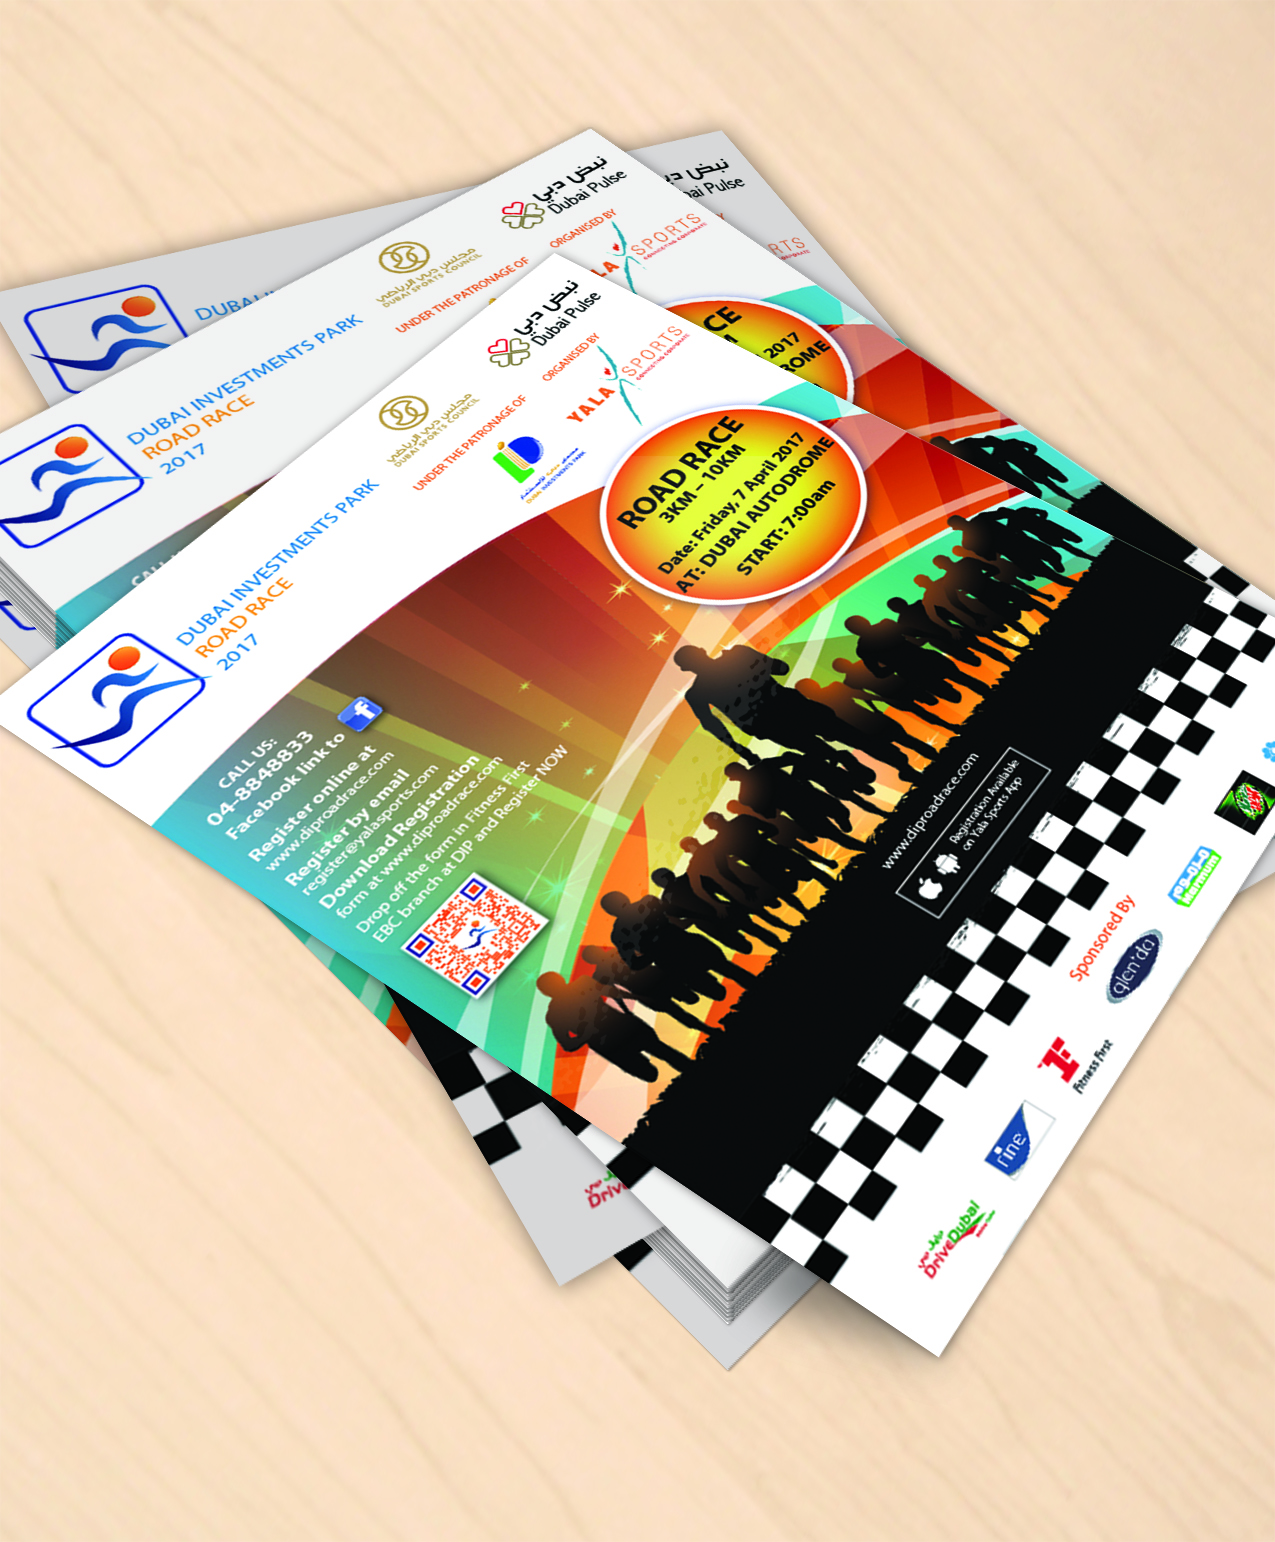 DIP Road Race 2017 Flyer - Client: Yala SportsDescription: Design Flyer for the promotion of the Dubai Investments Park 2017 Road Race. Client wanted something bright and colourful which included both sponsor and organizer logos.Year: 2017